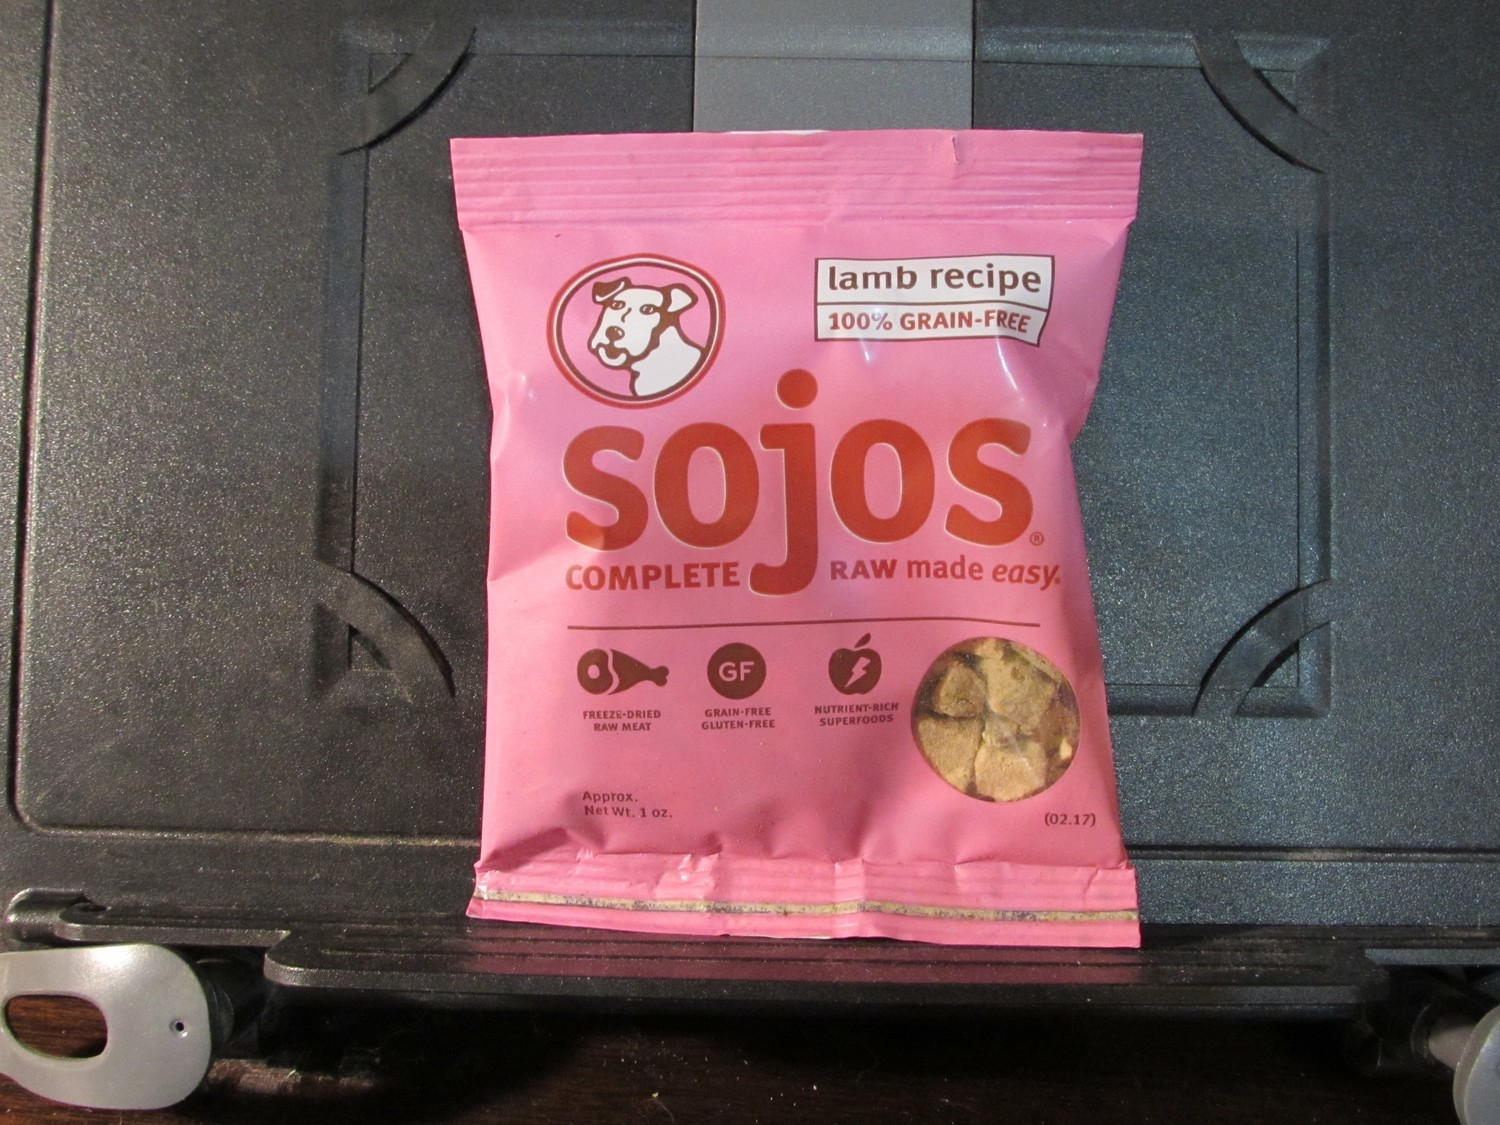 Sojos Complete 100% Grain Free Lamb Recipe Trial Size (10/18) (A.P3)